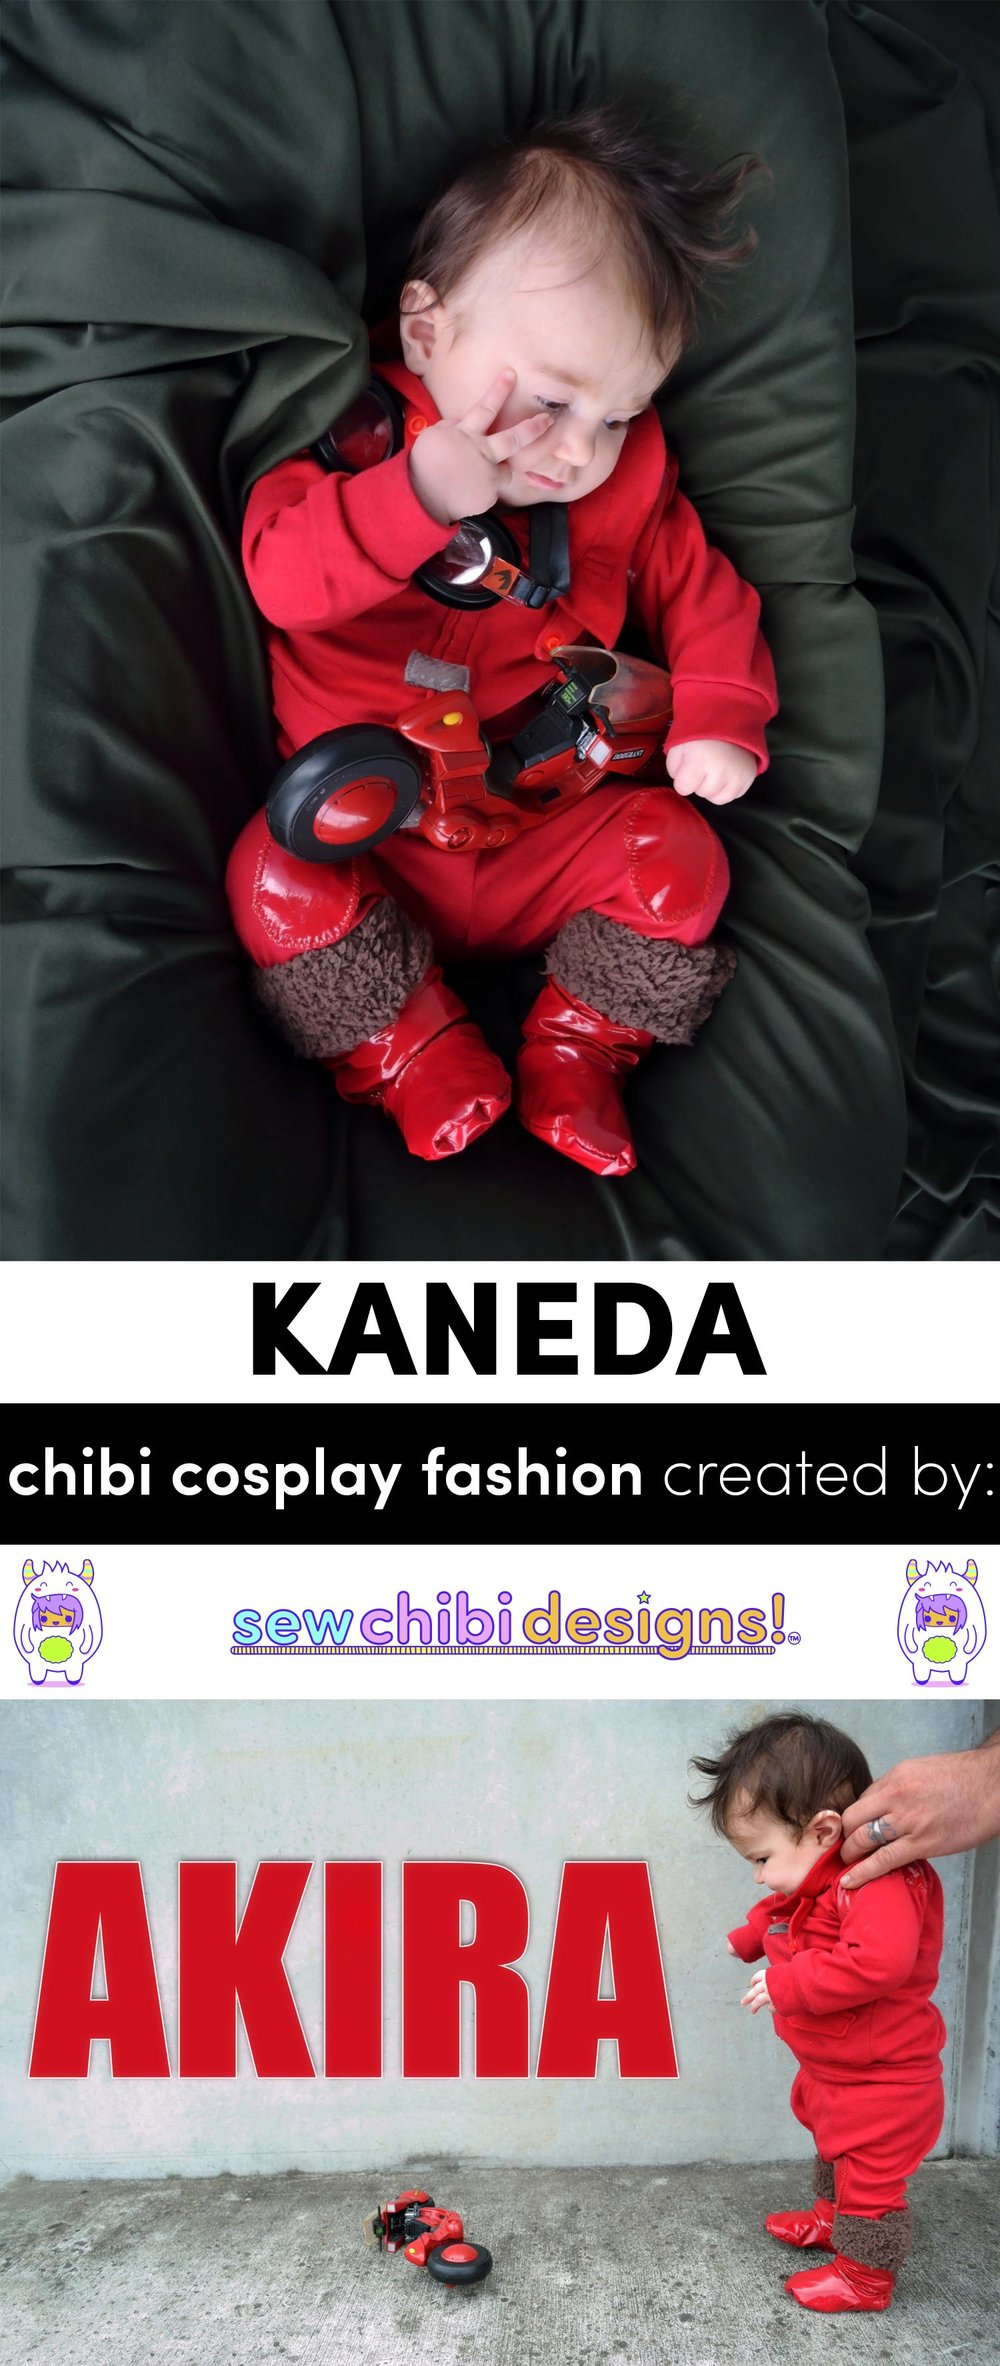 a very chibi Kaneda from AKIRA cosplay created and sewn by Sew Chibi Designs for Classic Anime themed Sew Geeky Series!